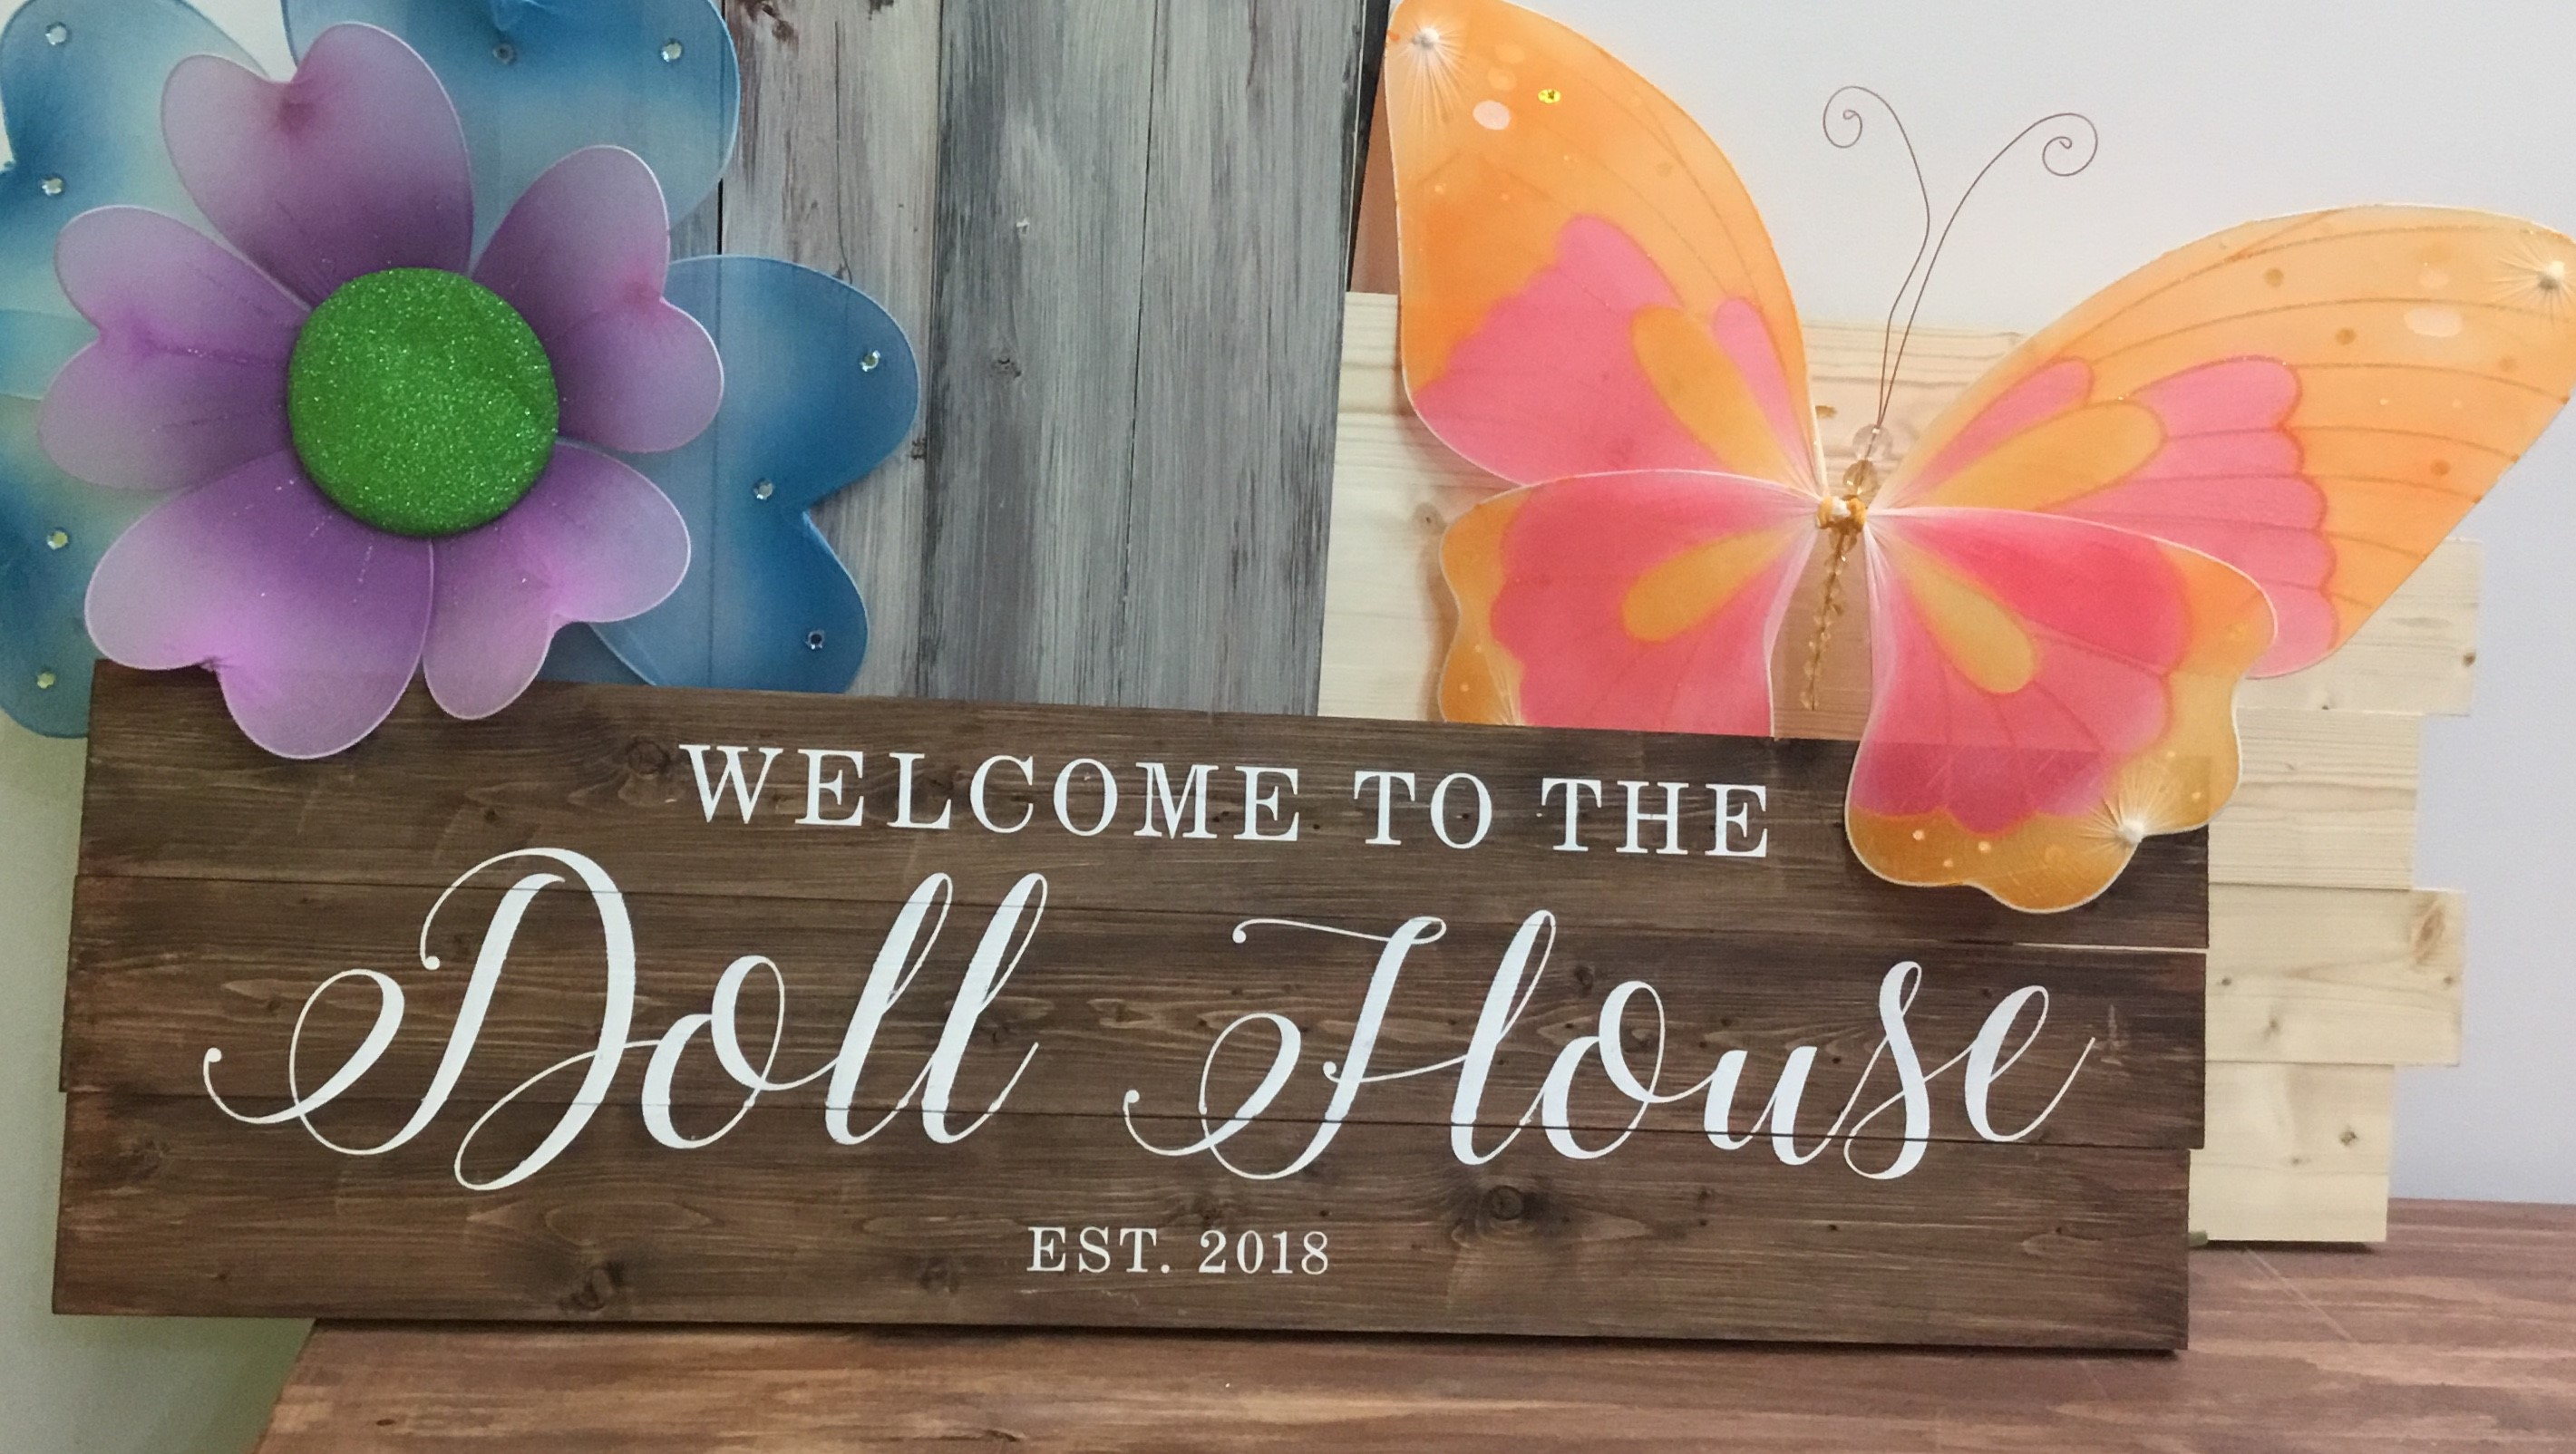 Welcome to the Doll house